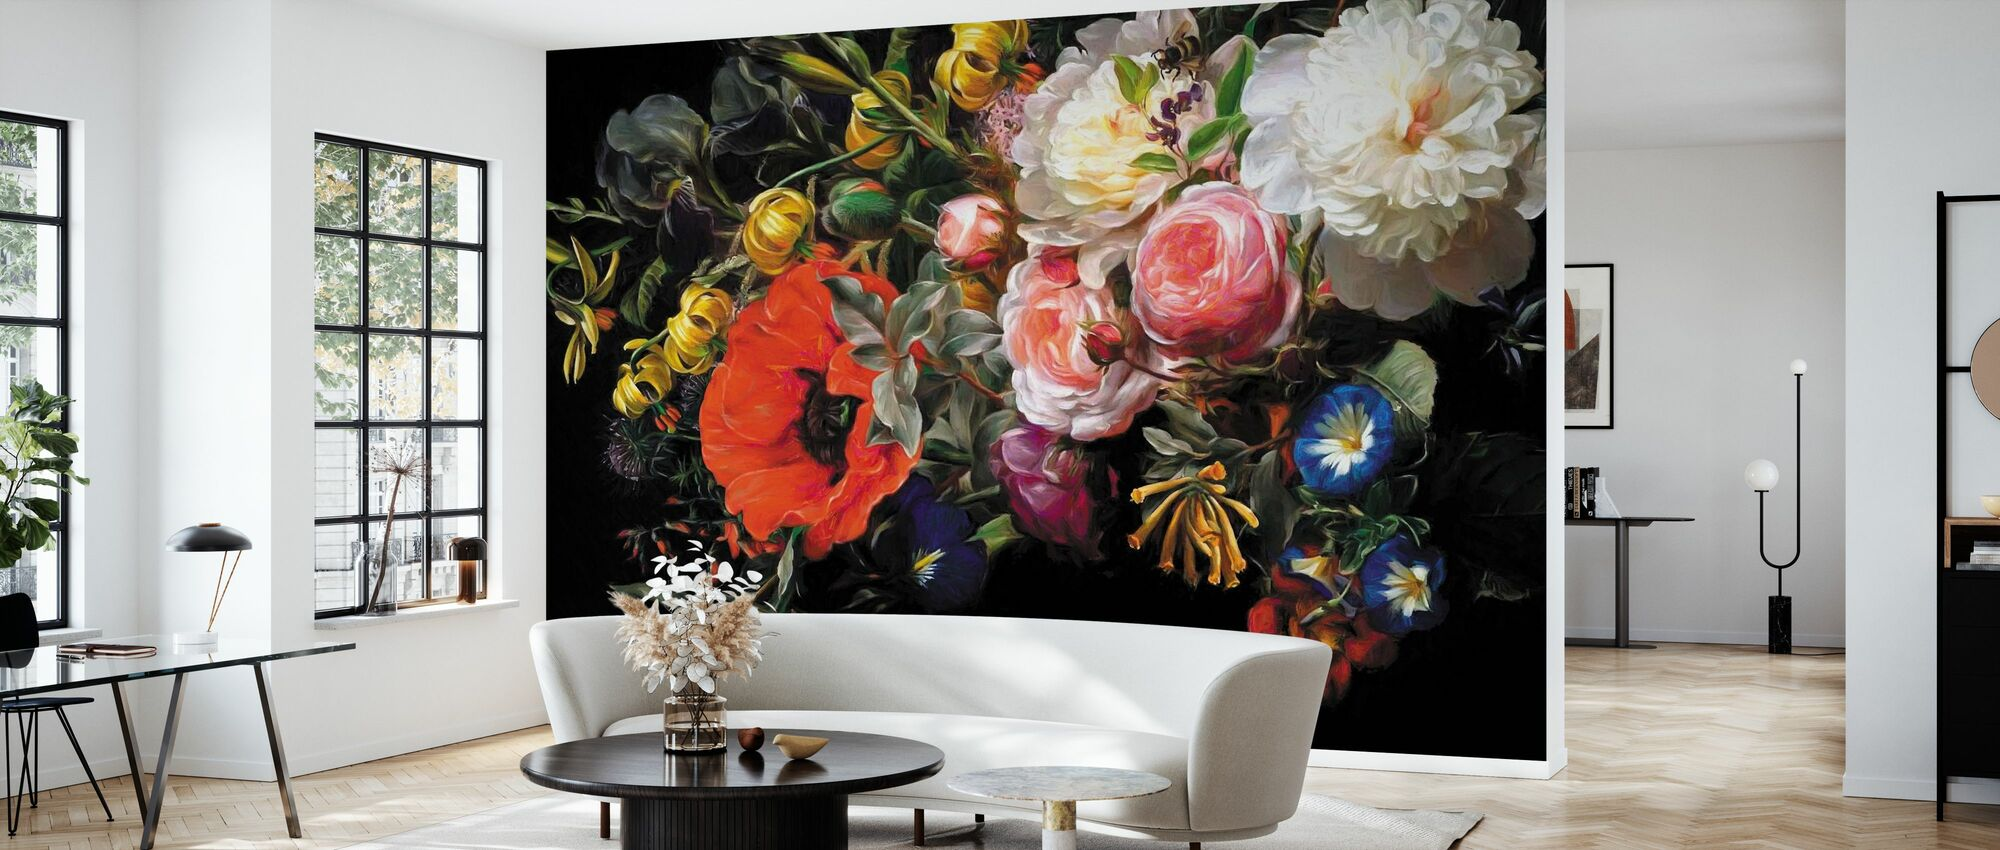 Roses and Poppies - Wallpaper - Living Room